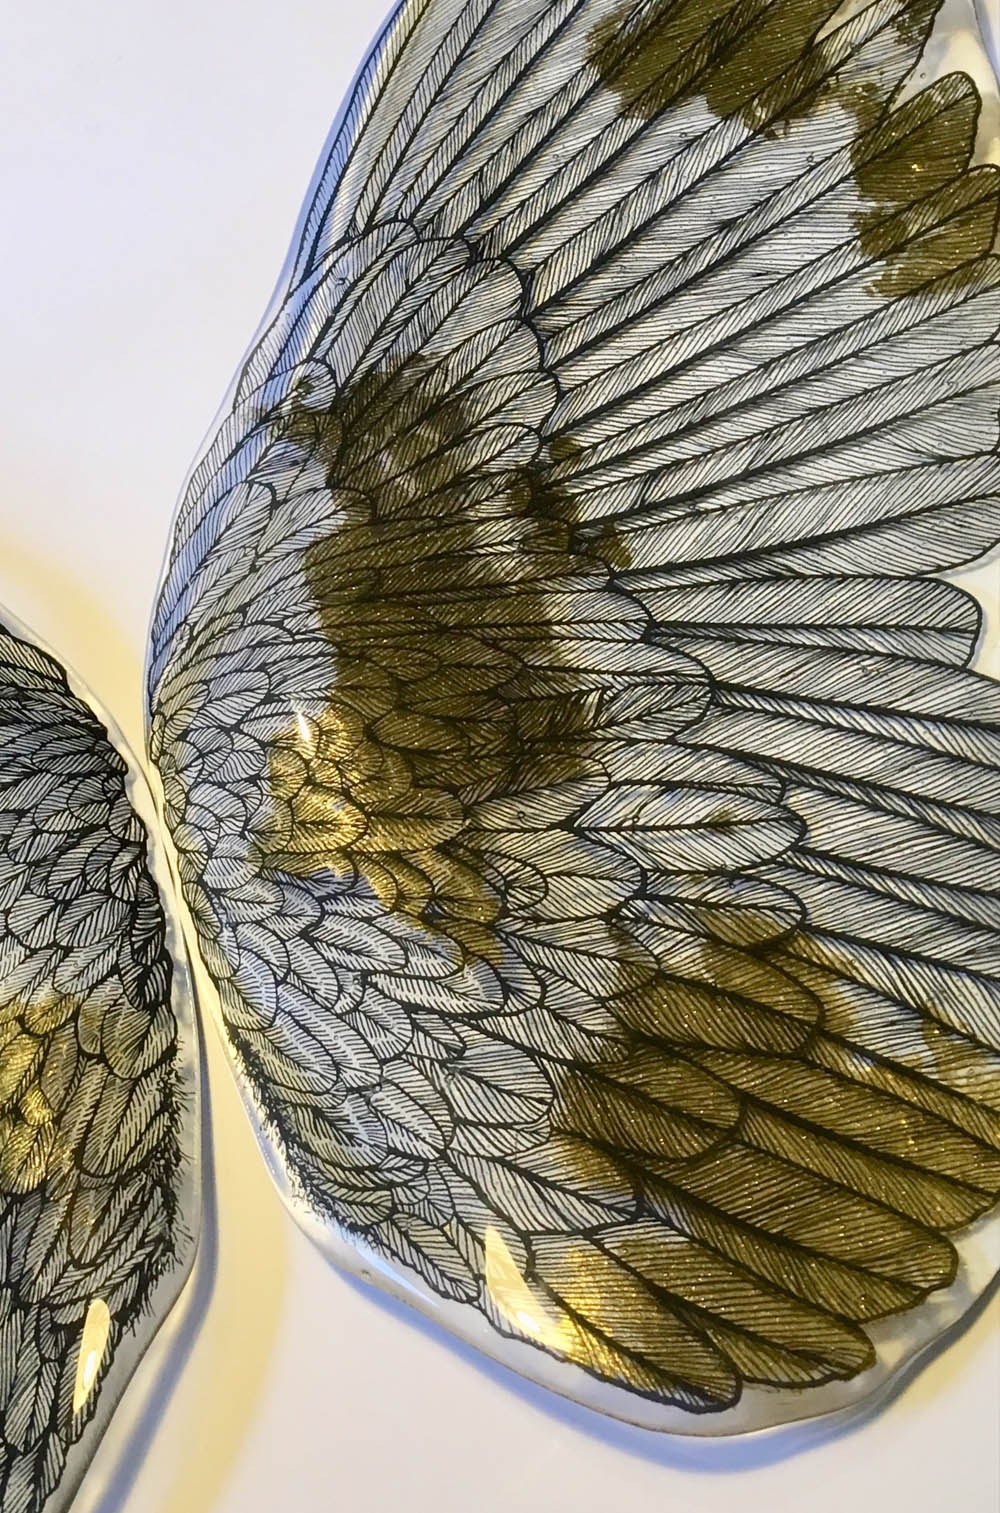 Wings by Pippa Stacey detail